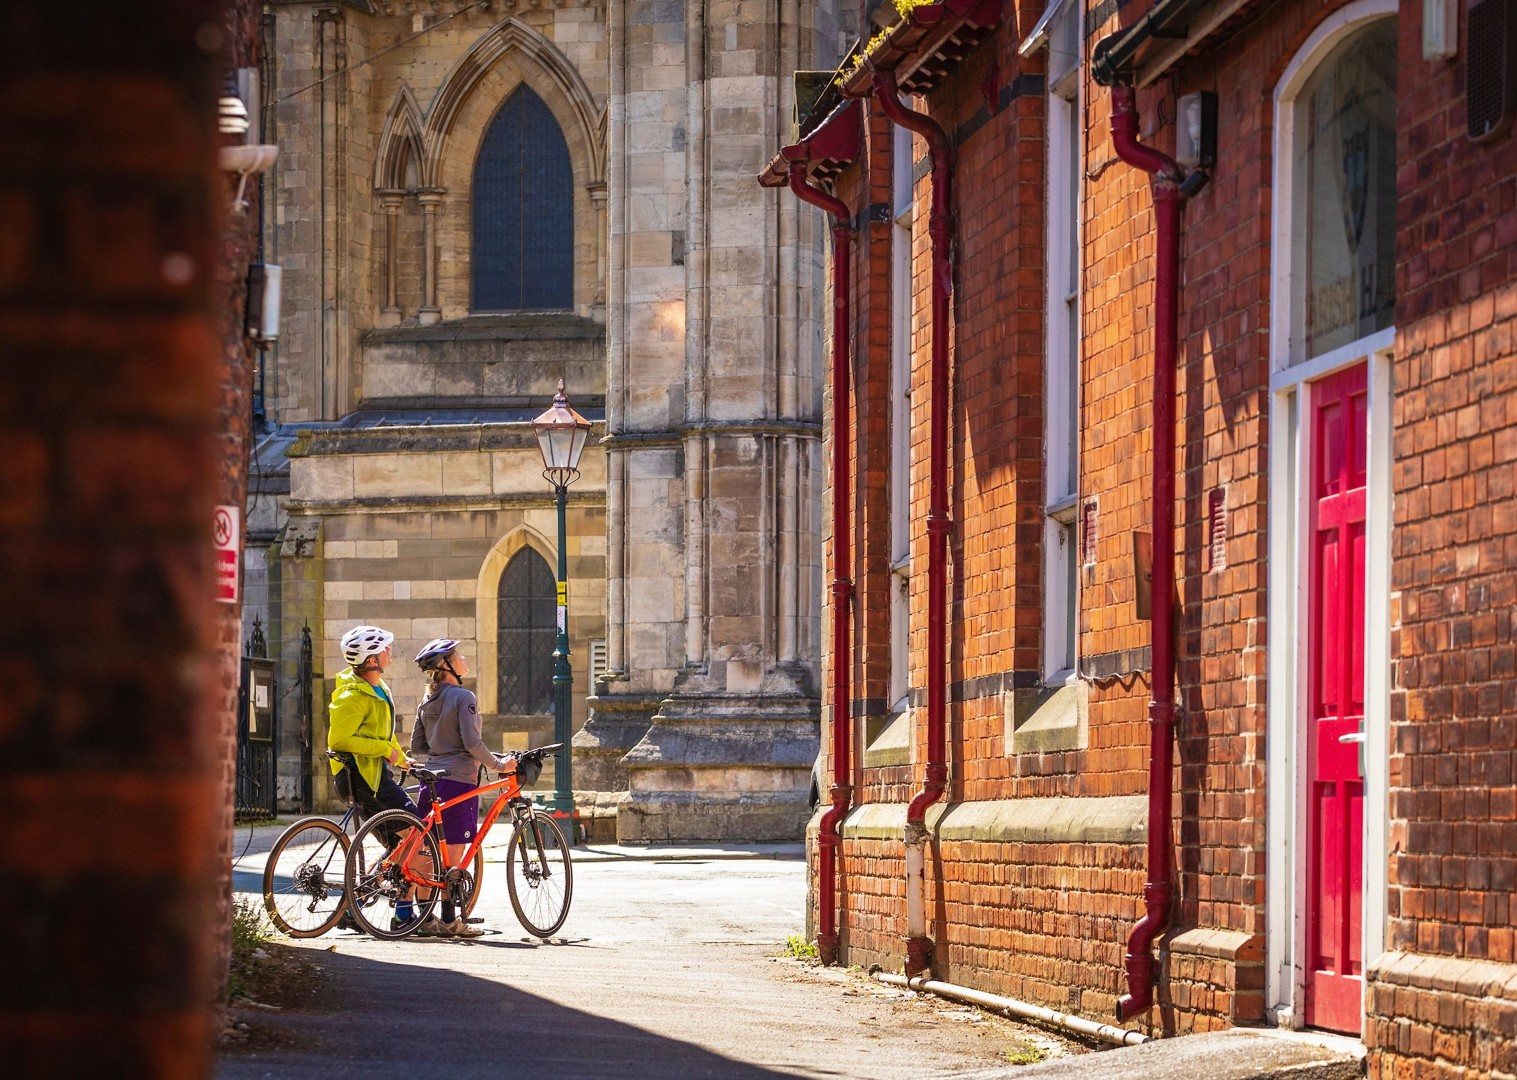 minster-beverley-wolds-landmark-uk-cycling-tour.jpg - UK - Yorkshire Wolds - 5 Days Cycling - Self-Guided Leisure Cycling Holiday - Leisure Cycling